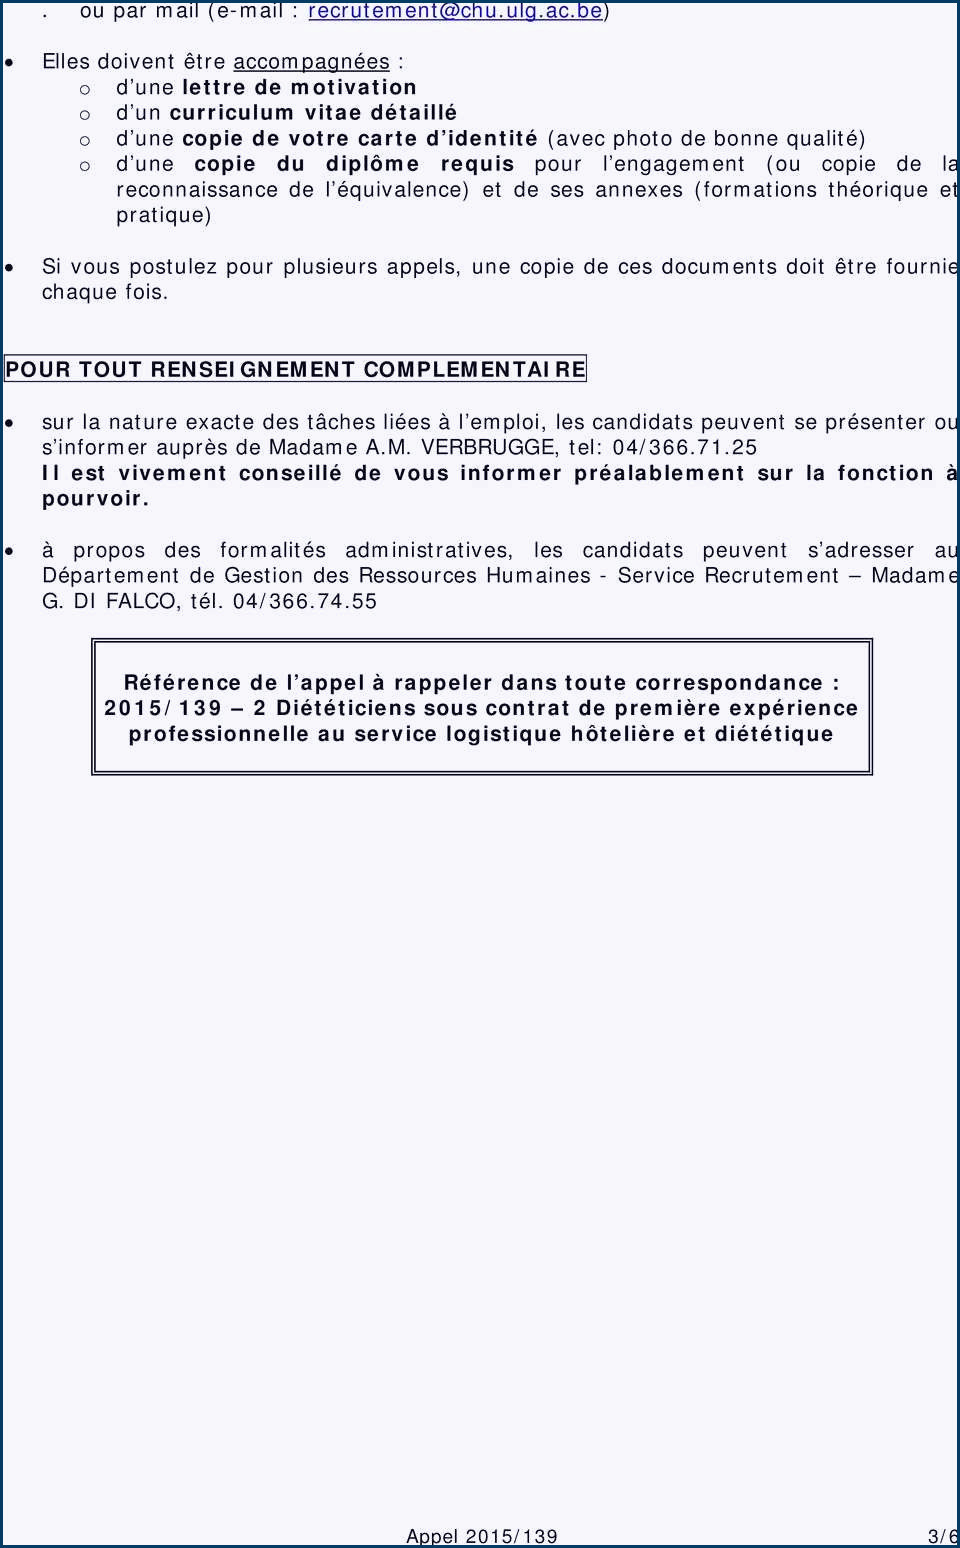 Exemple De Cv Cuisinier 41 Collections De Creer Cv Worldindoorlacrosse